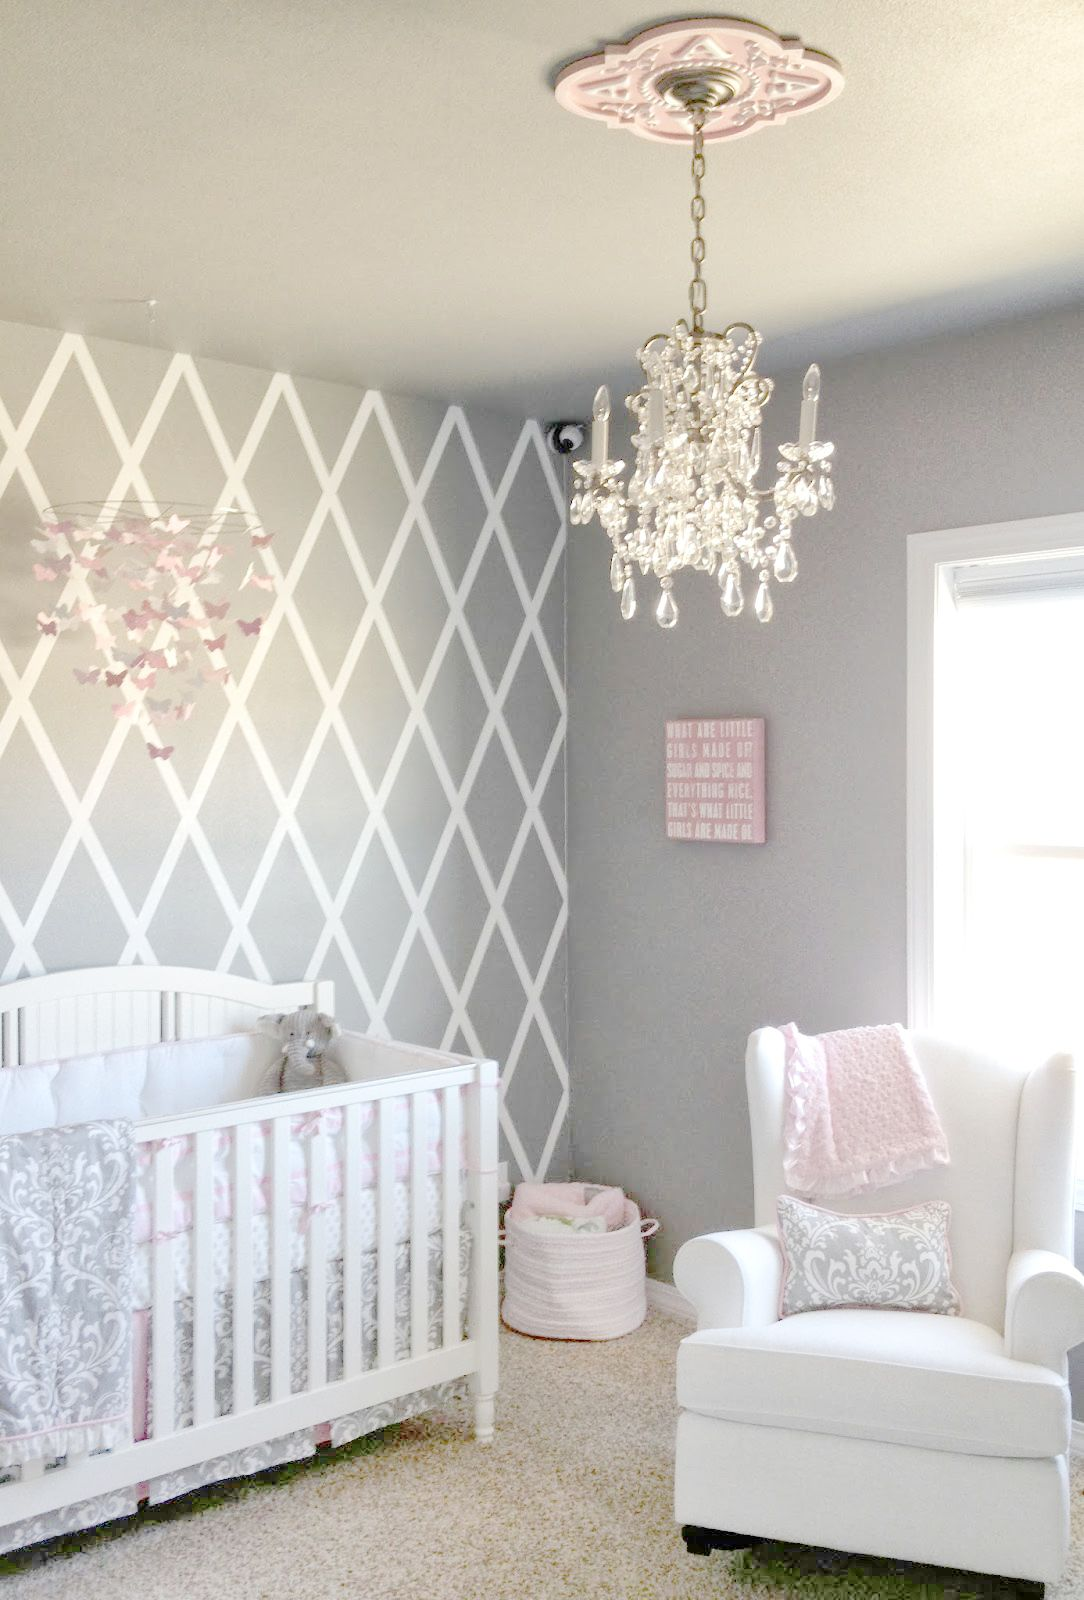 grey combine which using complete brown also chandelier gorgeous on rug decoration best floor one crib select and with the is nursery elegant for to pink lamsphade white room gre table wall curtains baby